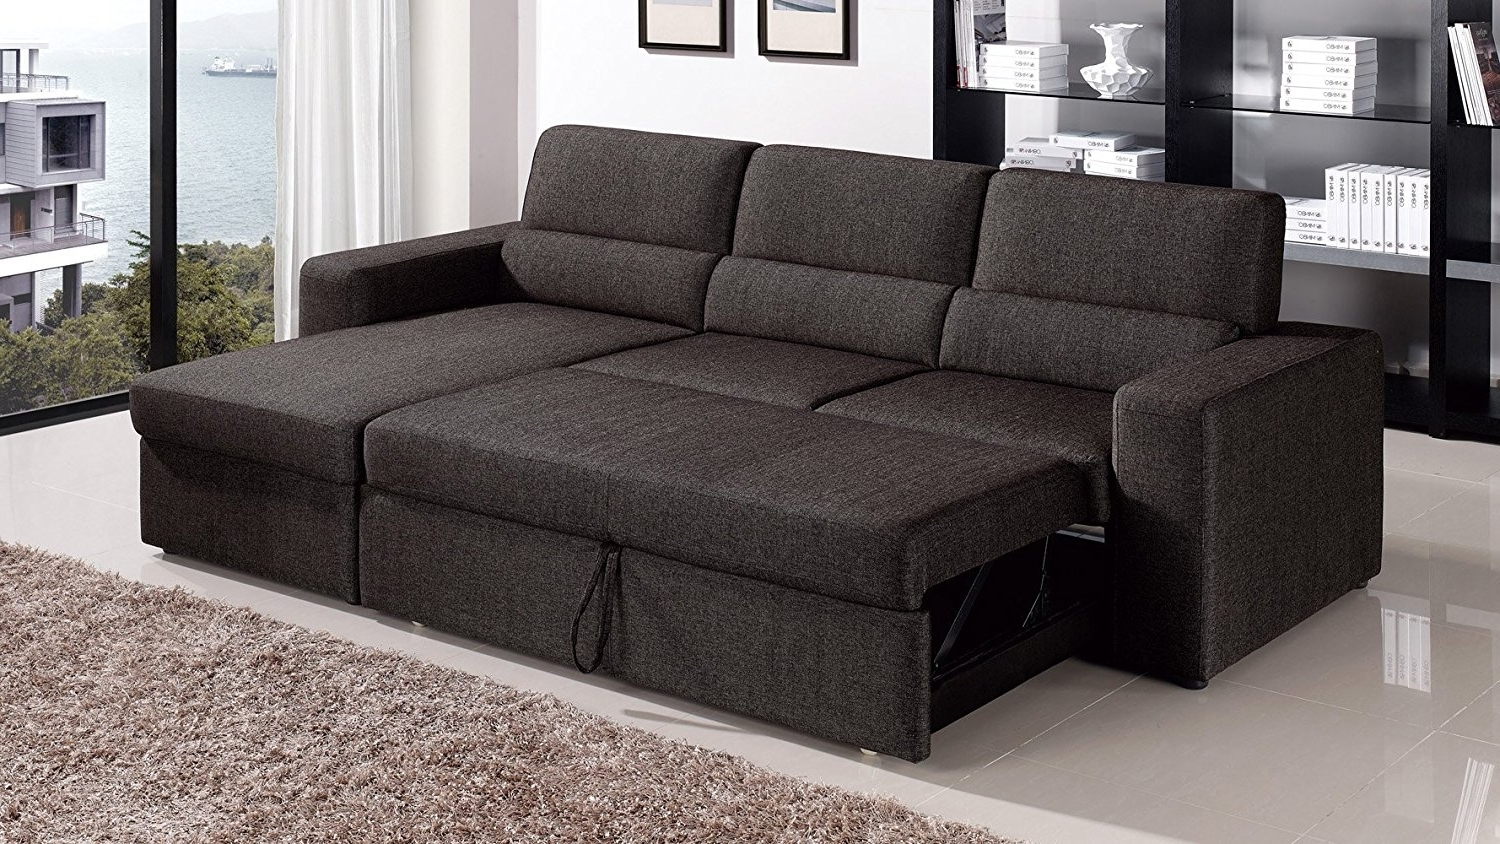 Chaise Sofa Sleepers Within Preferred Amazon: Black/brown Clubber Sleeper Sectional Sofa – Right (View 3 of 15)